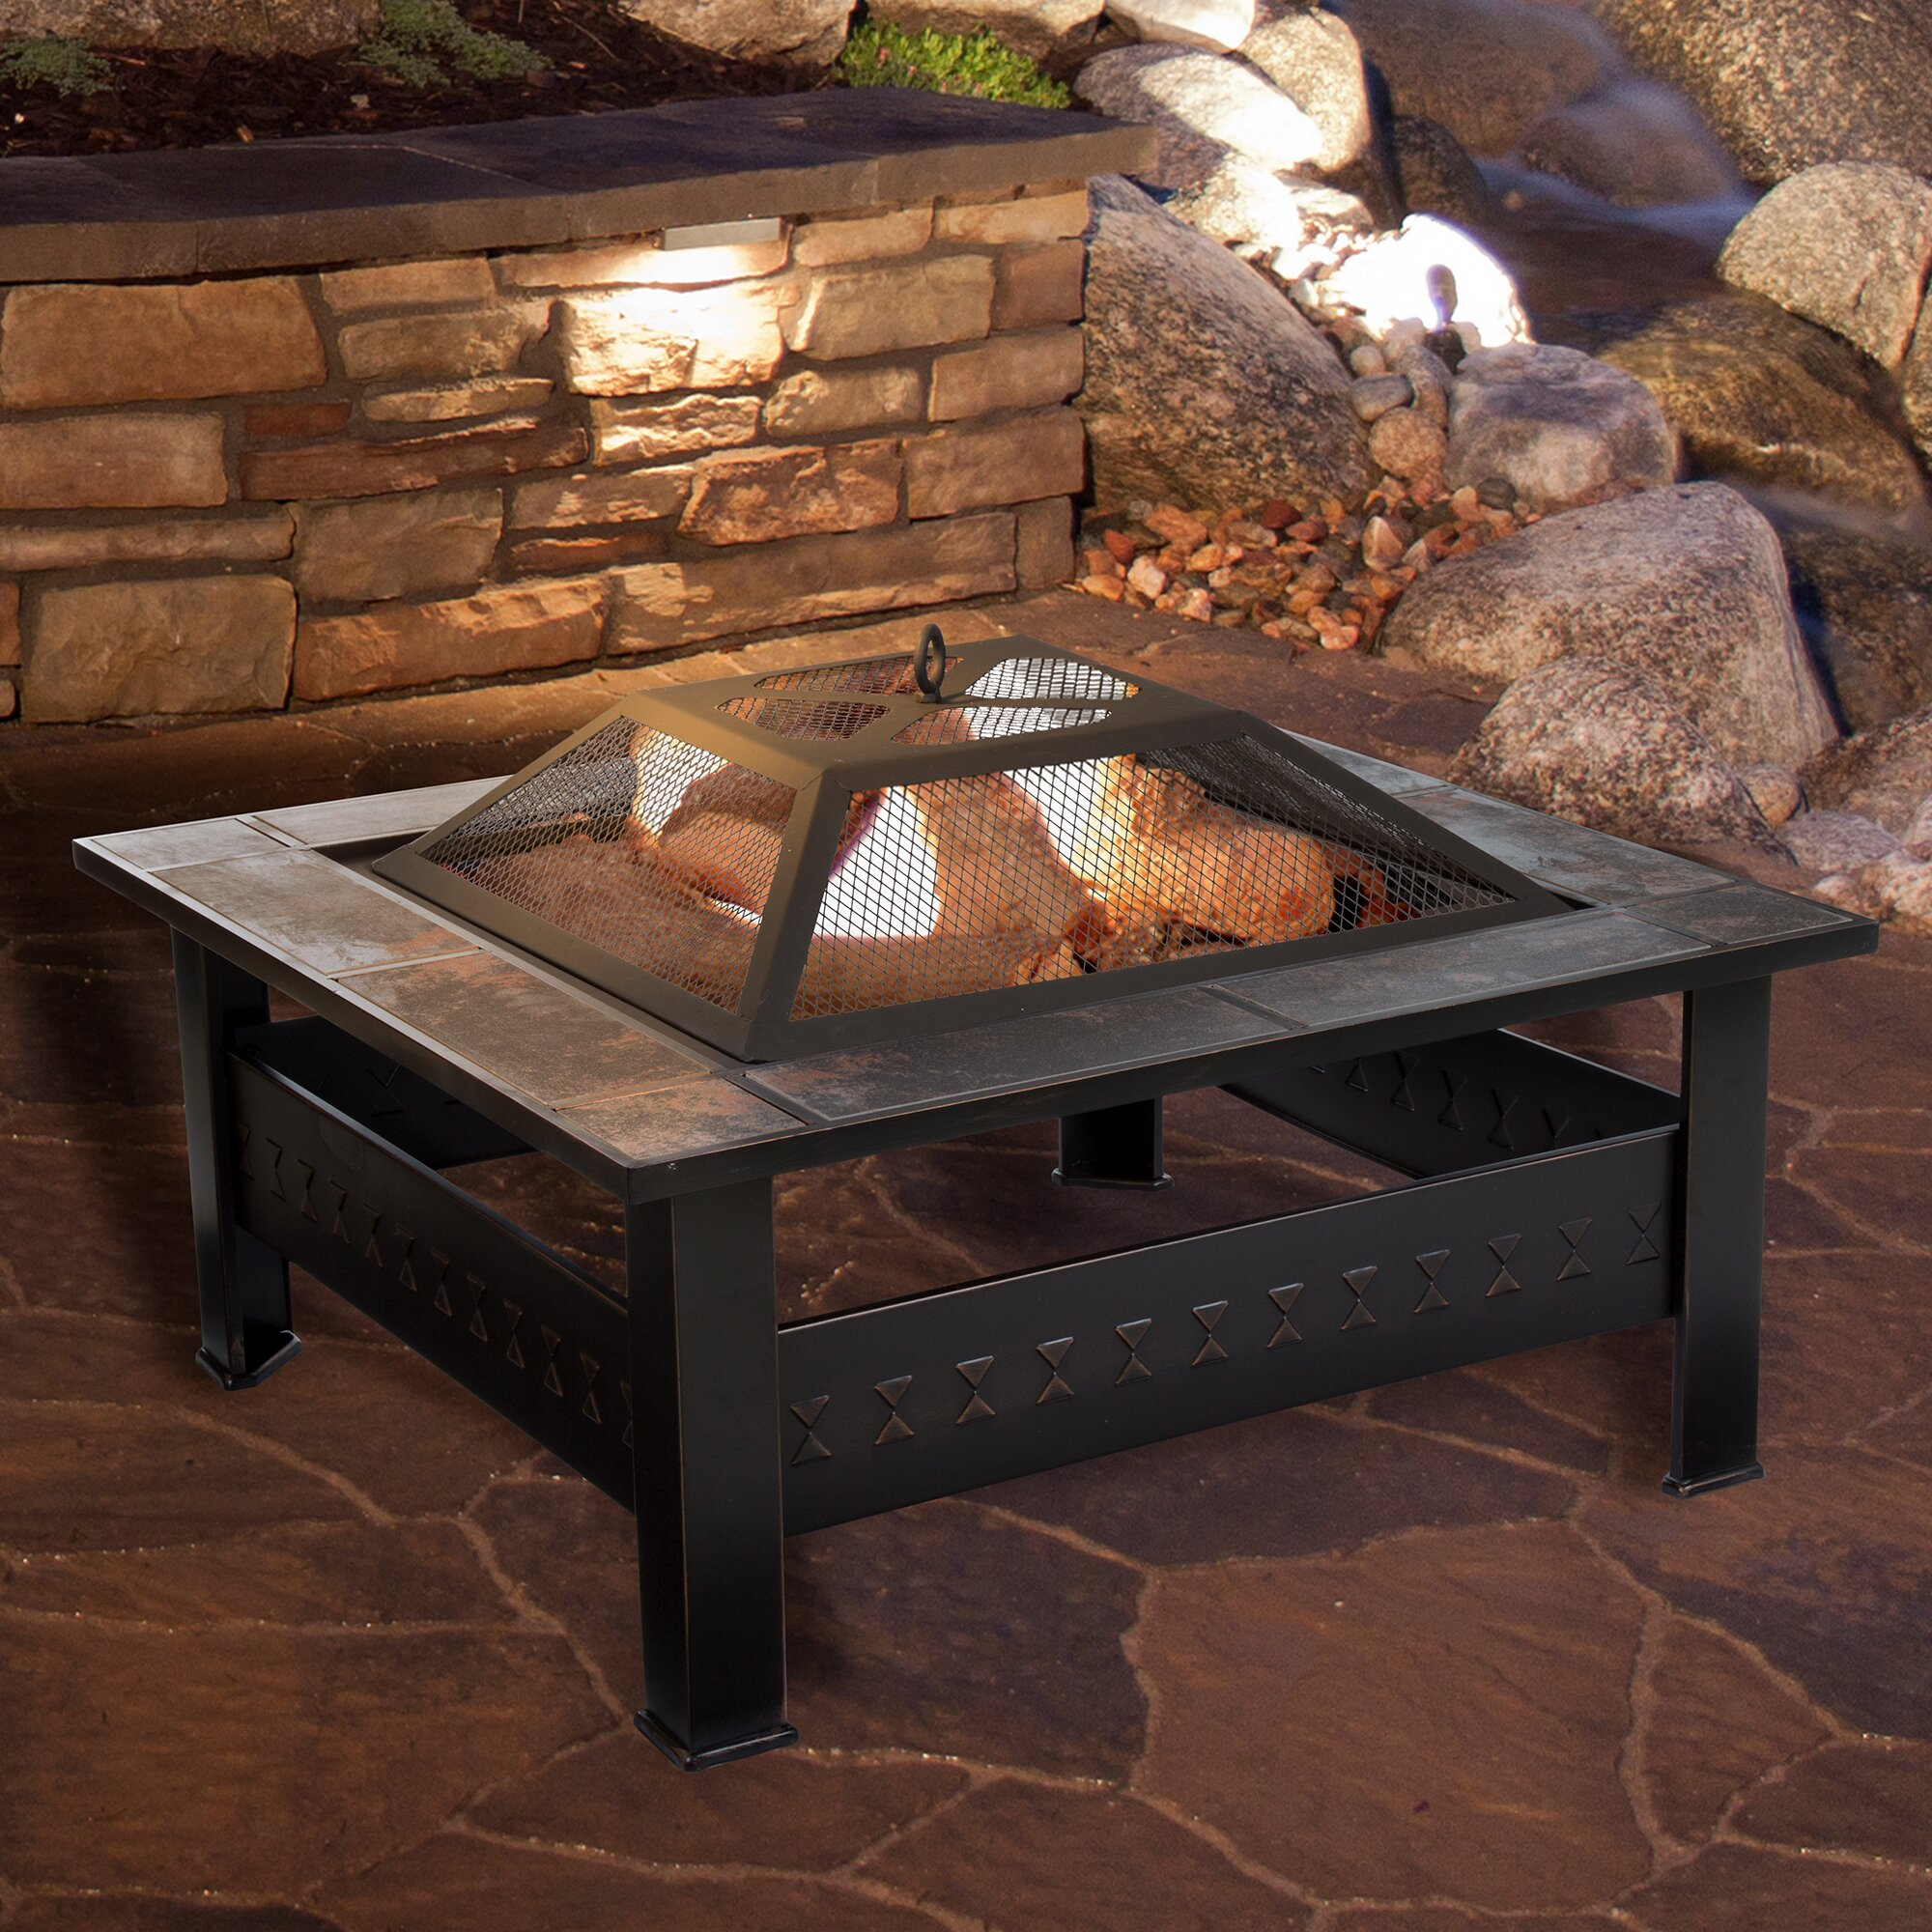 Table Fire Pit : Pure garden steel wood fire pit table reviews wayfair